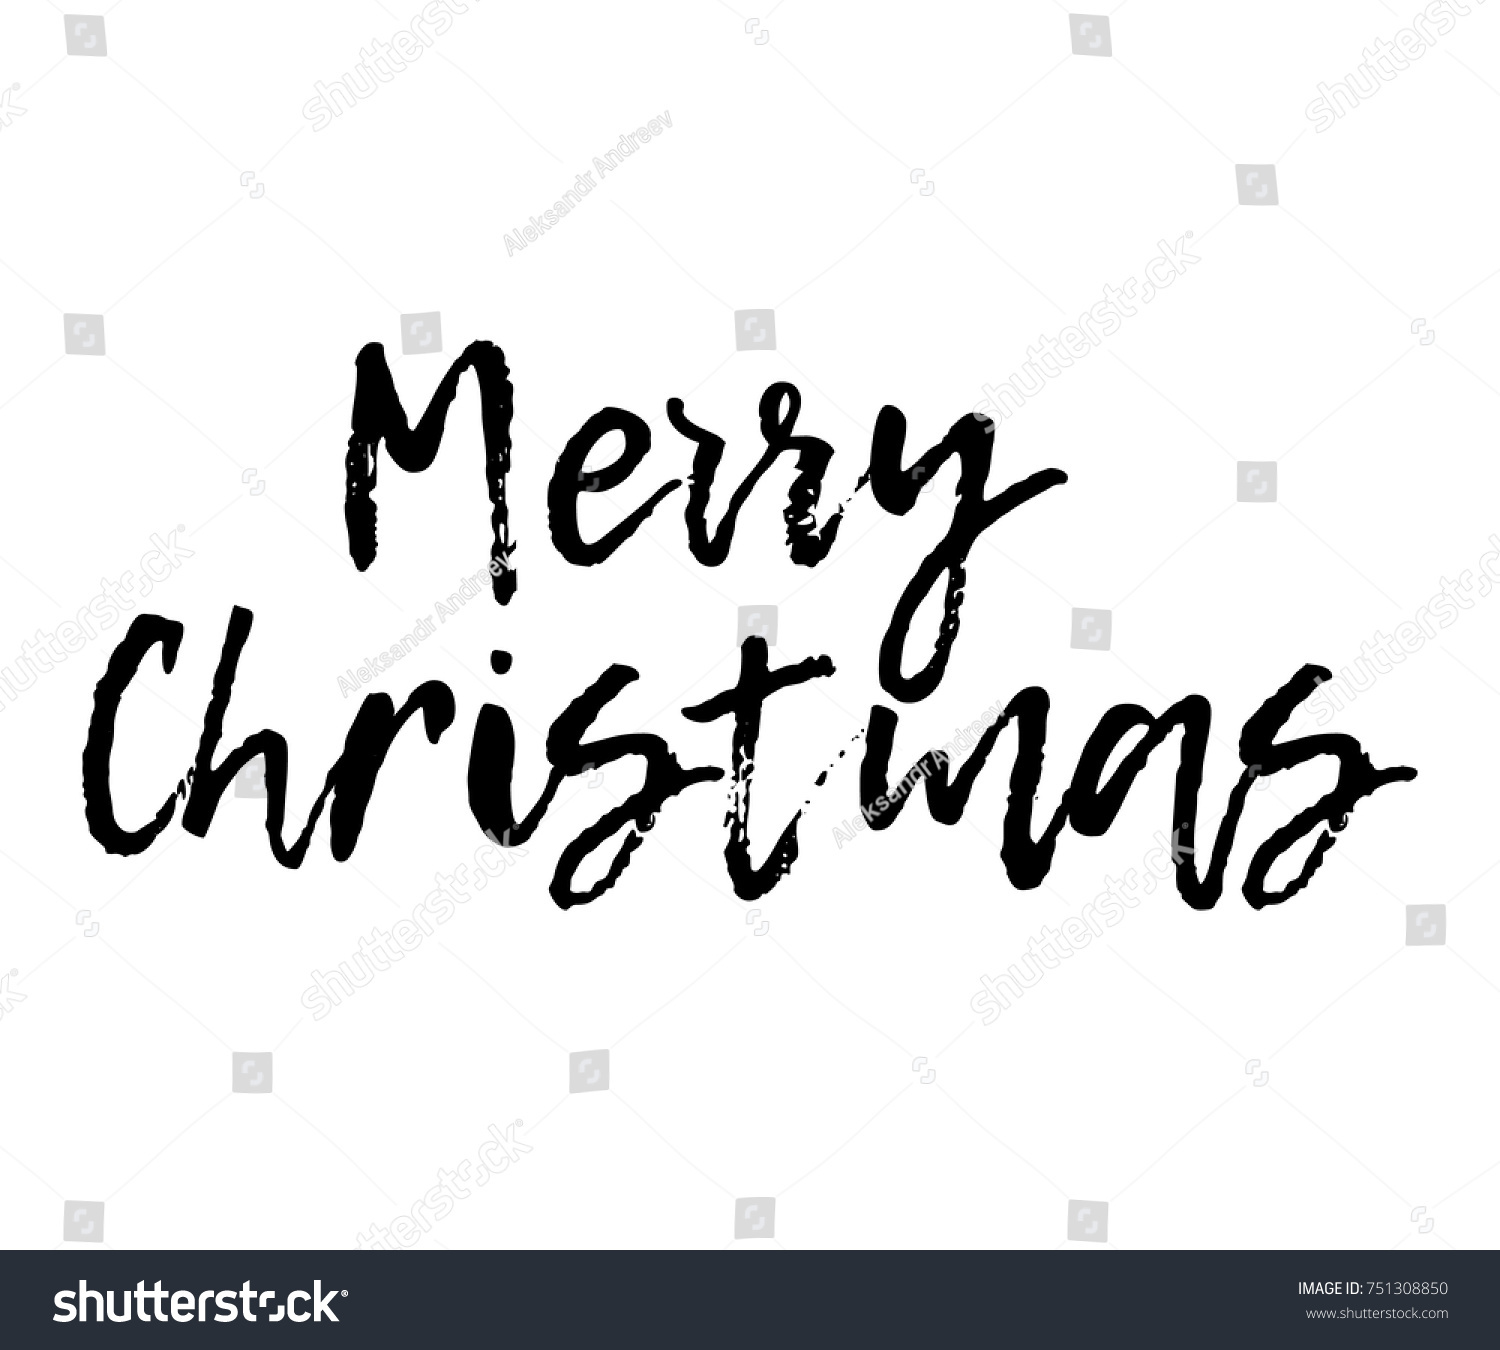 Merry christmas card calligraphy merry christmas stock vector merry christmas card with calligraphy merry christmas template for greetings congratulations housewarming posters kristyandbryce Image collections